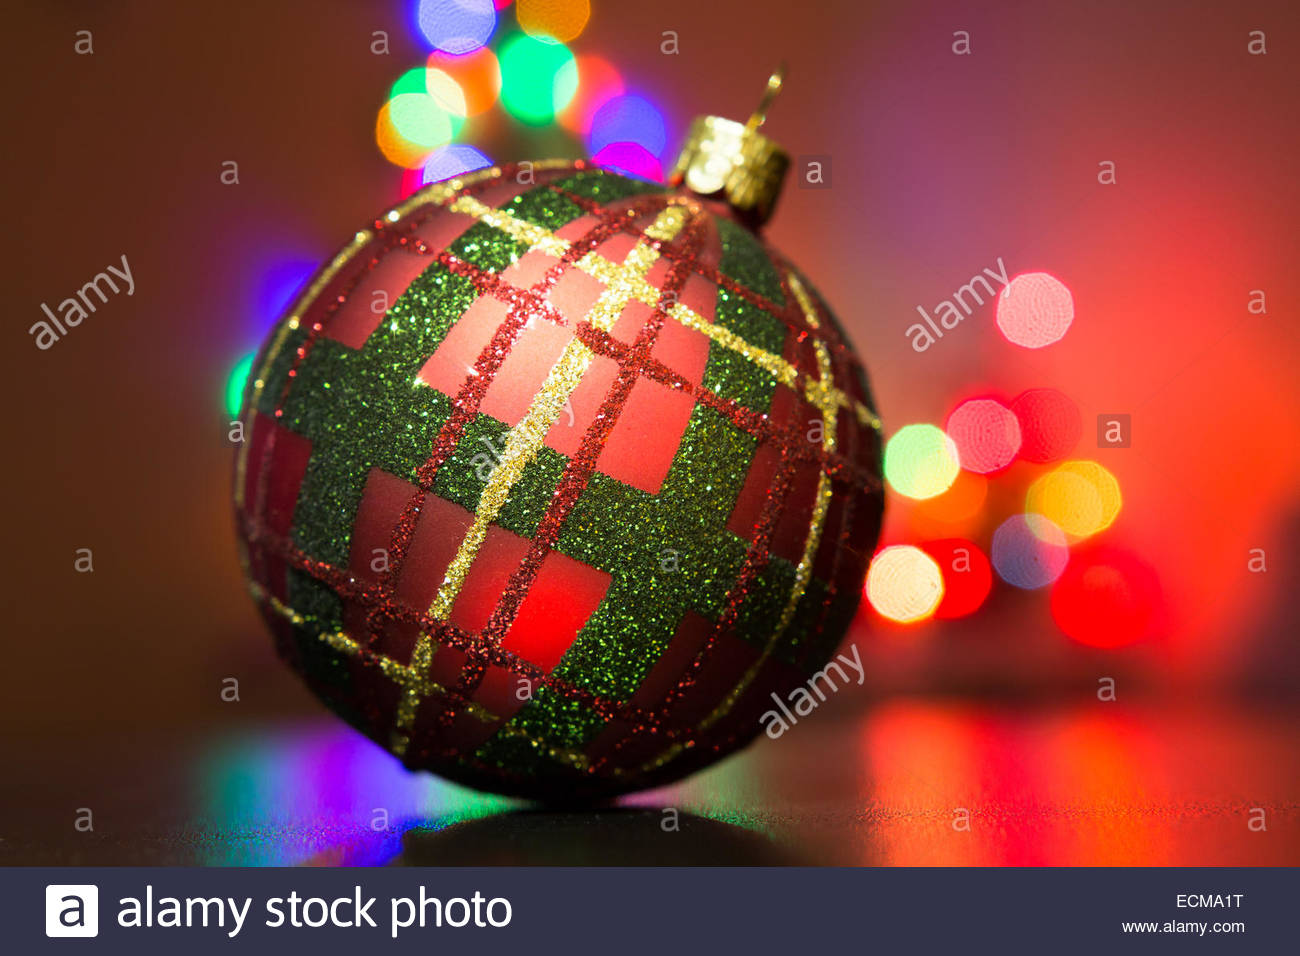 X-mas tree decor with background of blurry lights - Stock Image